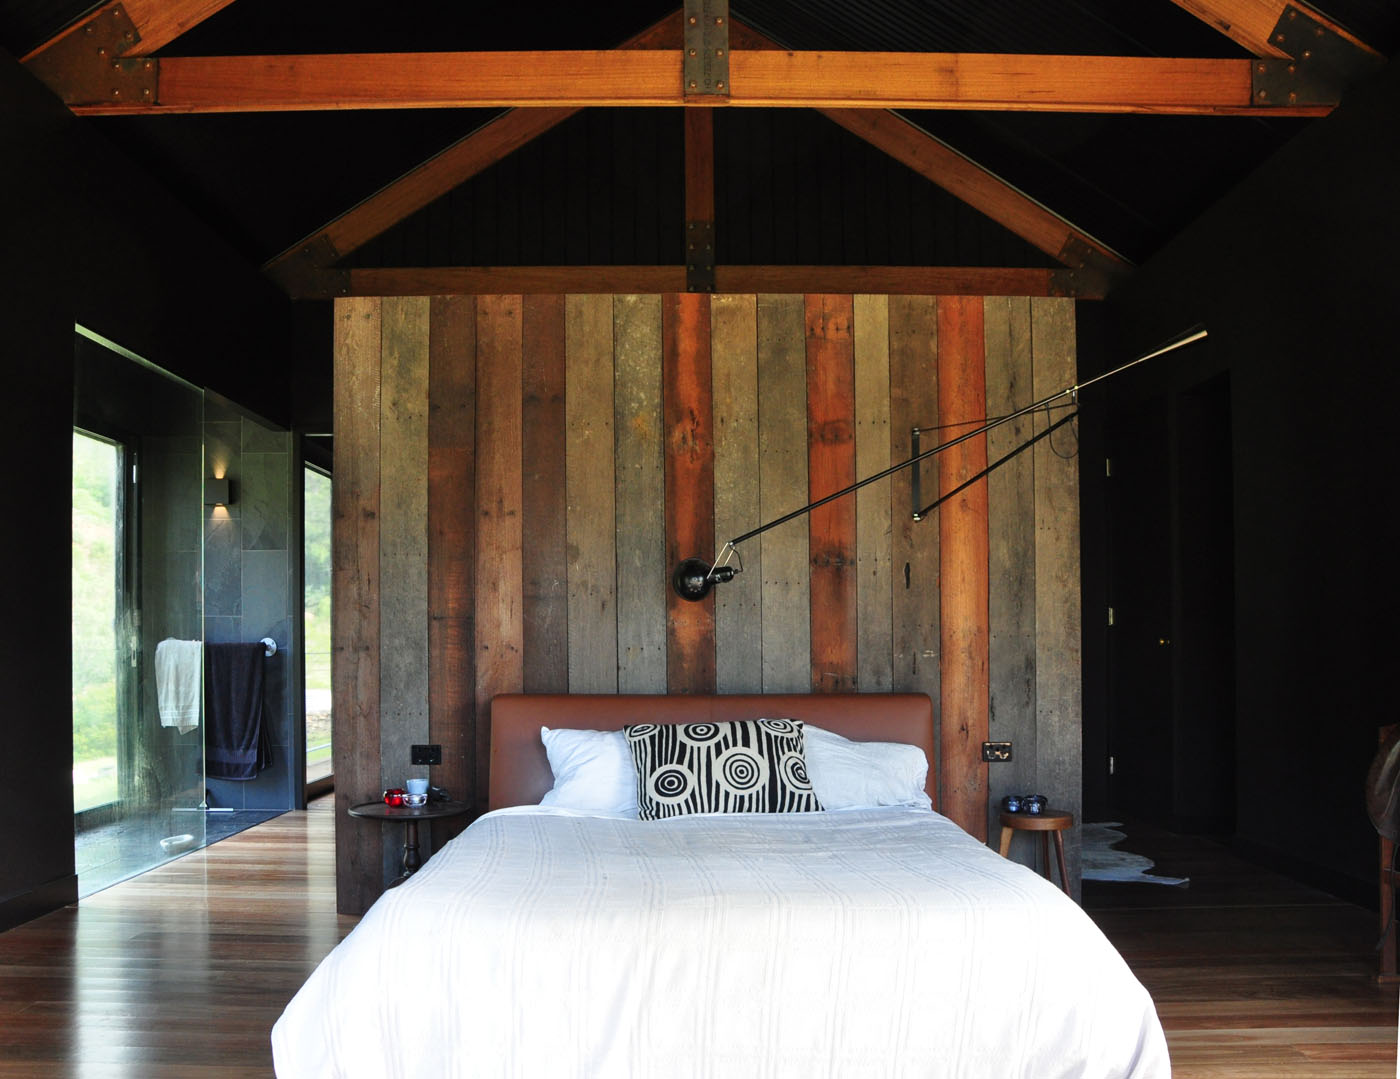 Gloucester Farmhouse by award winning residential architecture firm Sam Crawford Architects. Open plan bedroom with exposed structures and raw material palette